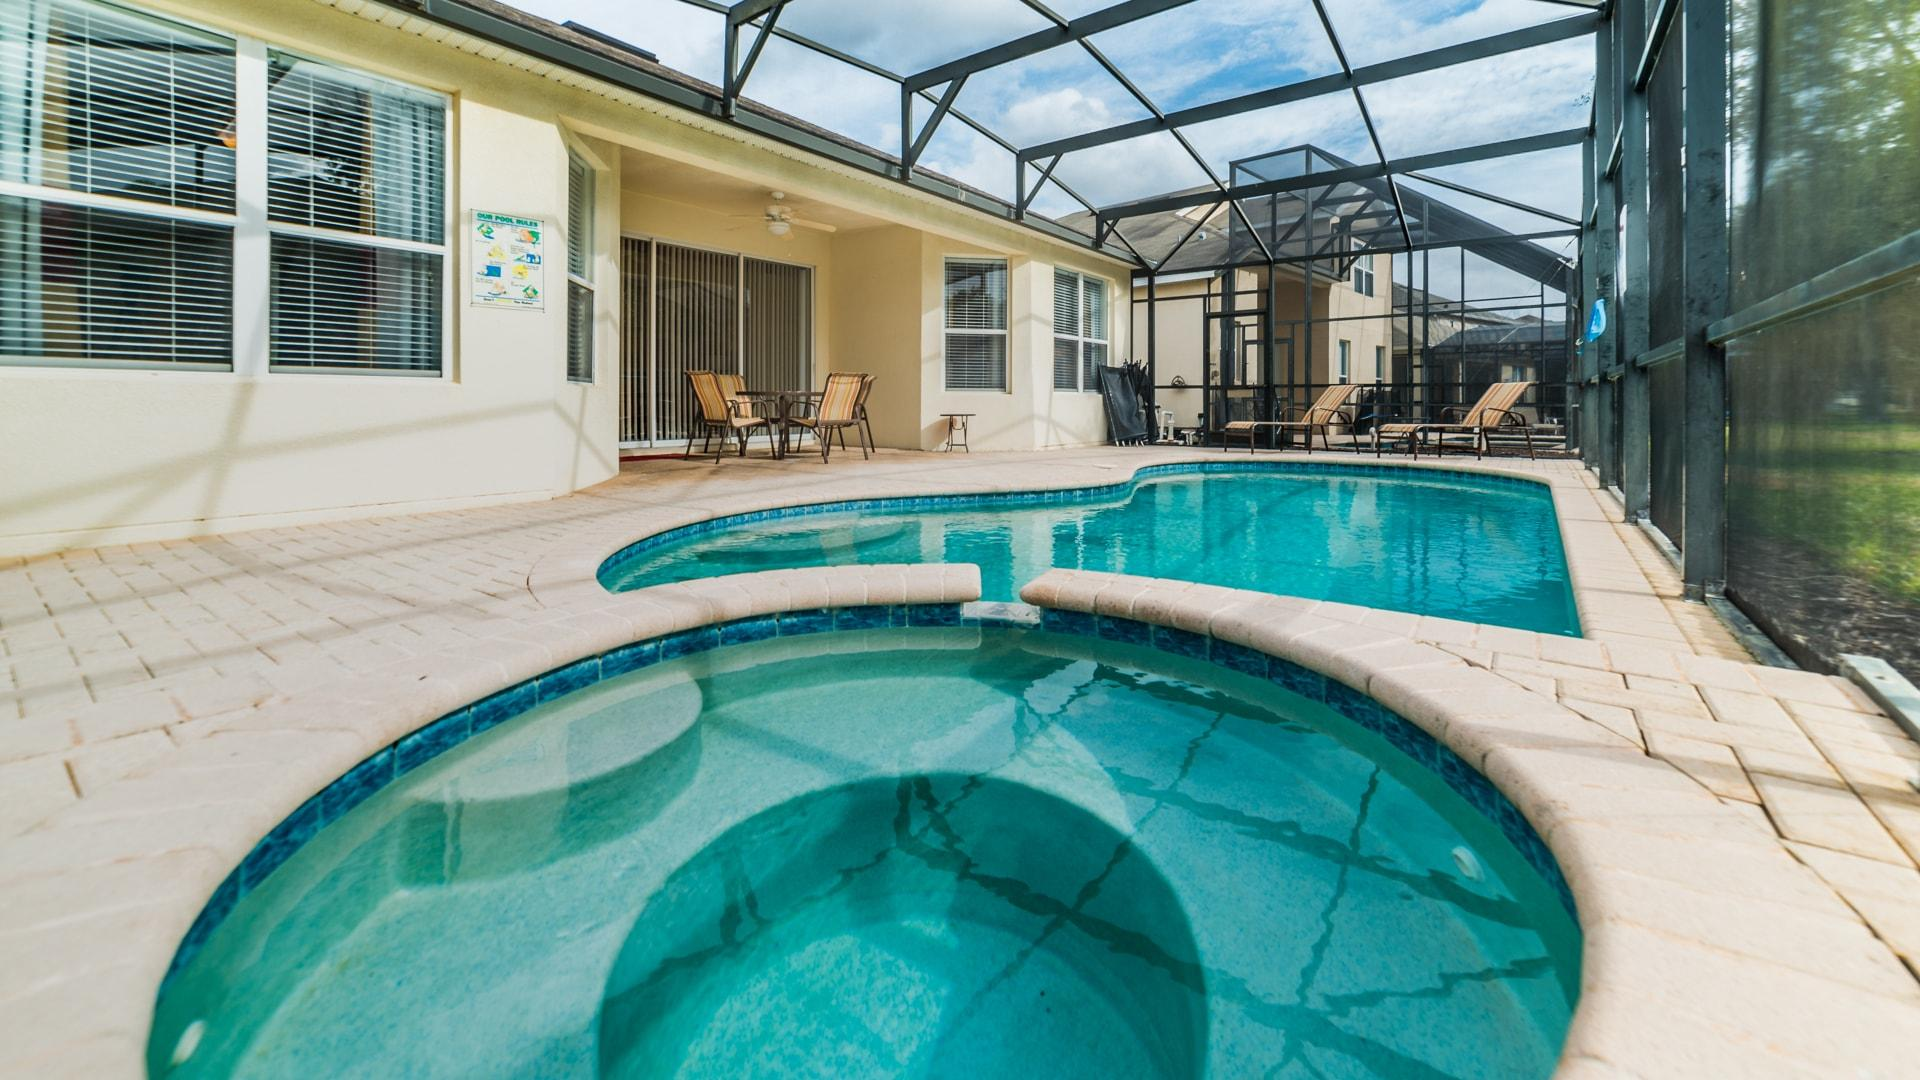 Property Image 2 - Luxury, Five-Bedroom Home with Screened Pool; Near Disney